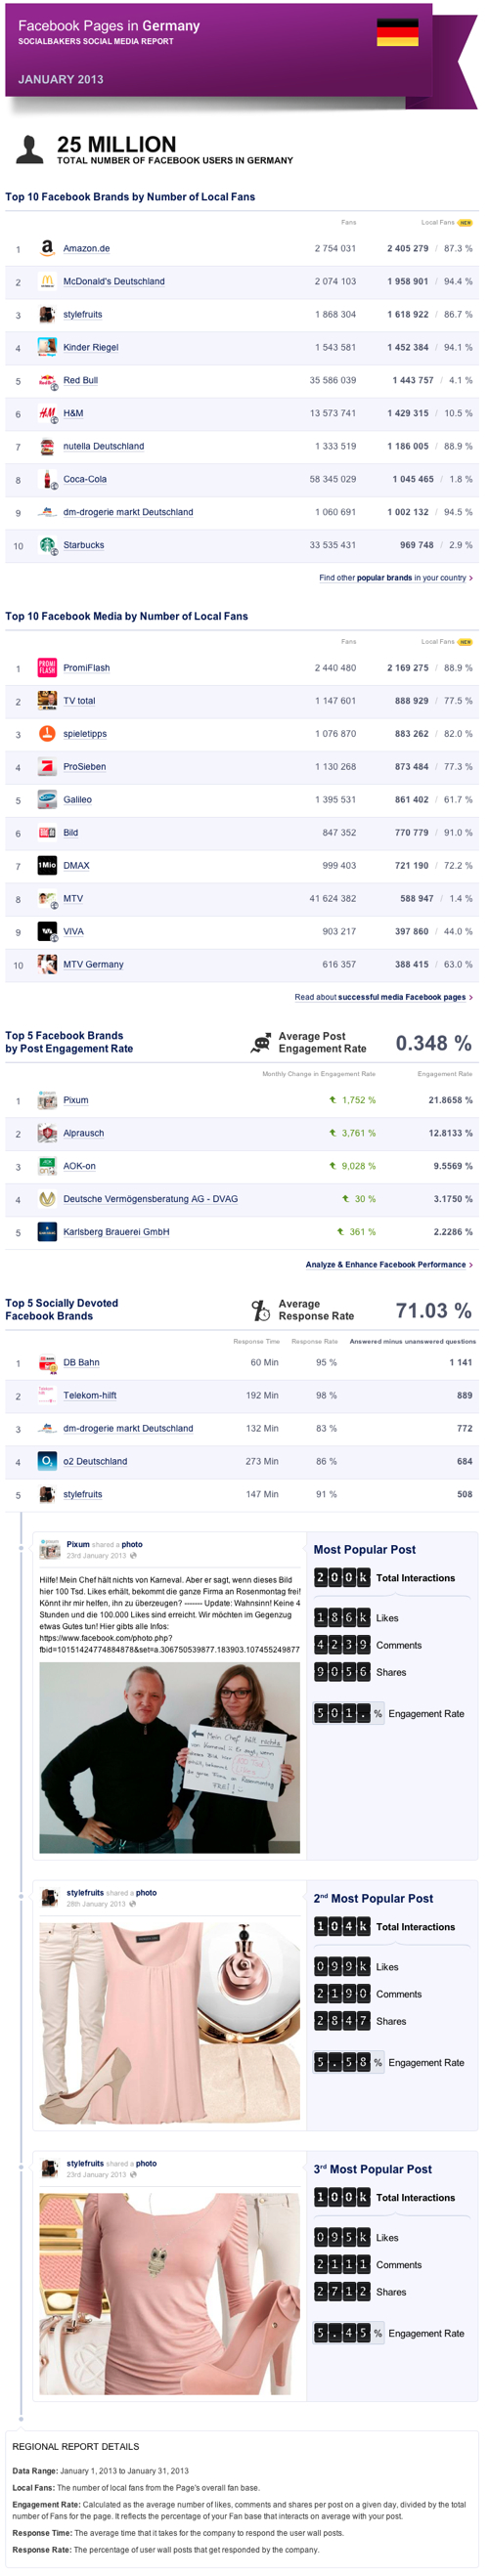 Top Facebook Pages in Germany